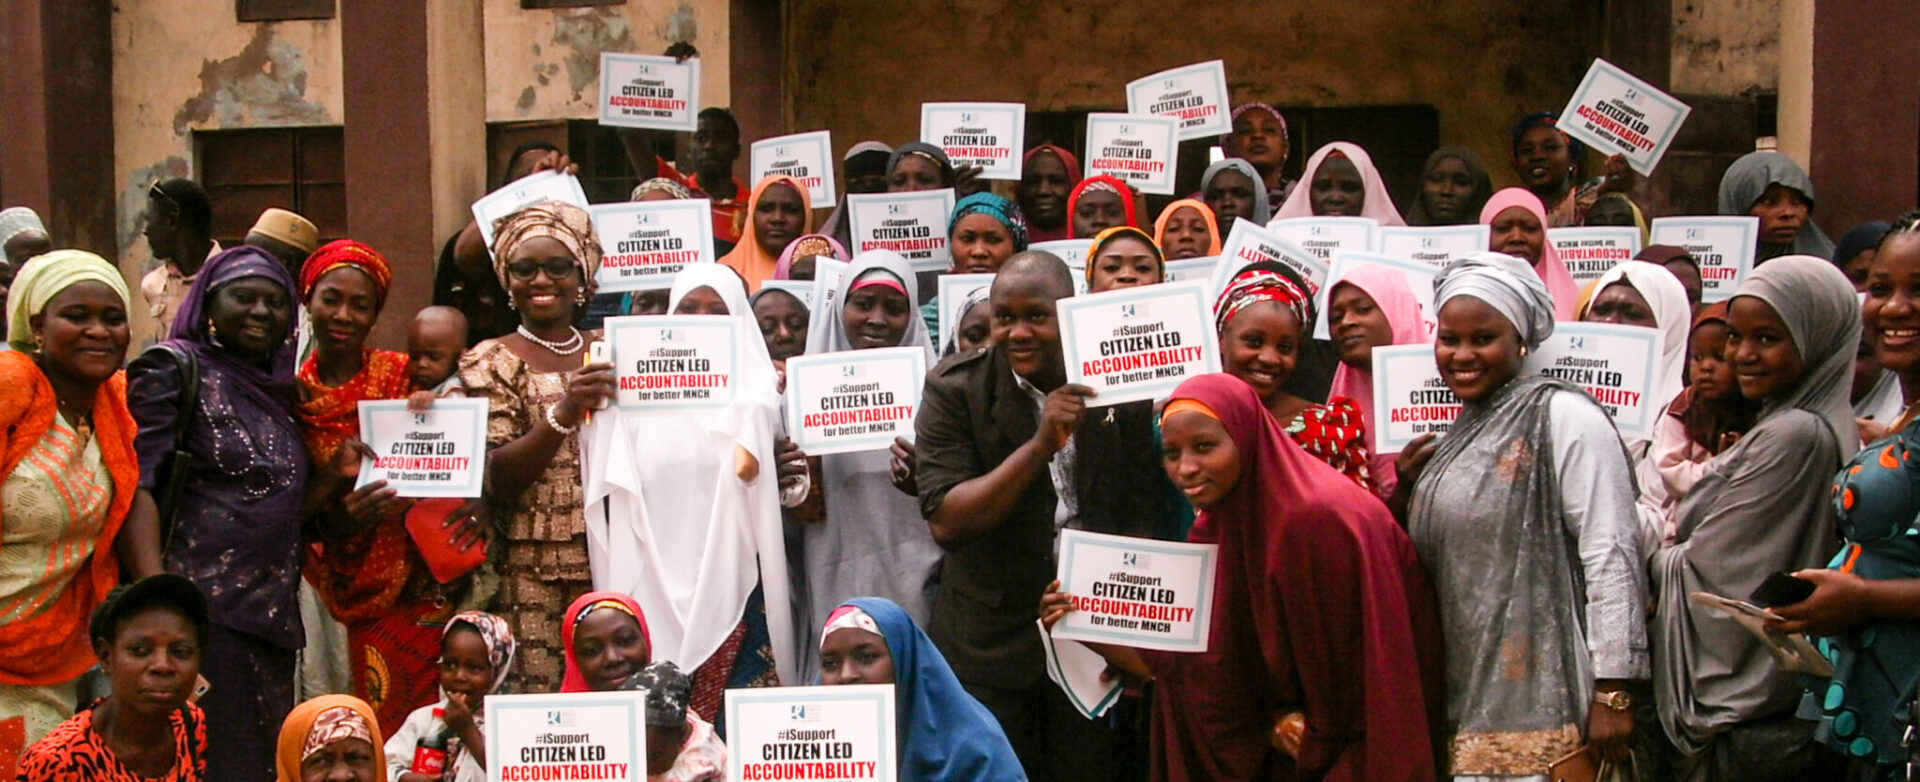 A group of women in Nigeria holding signs that say